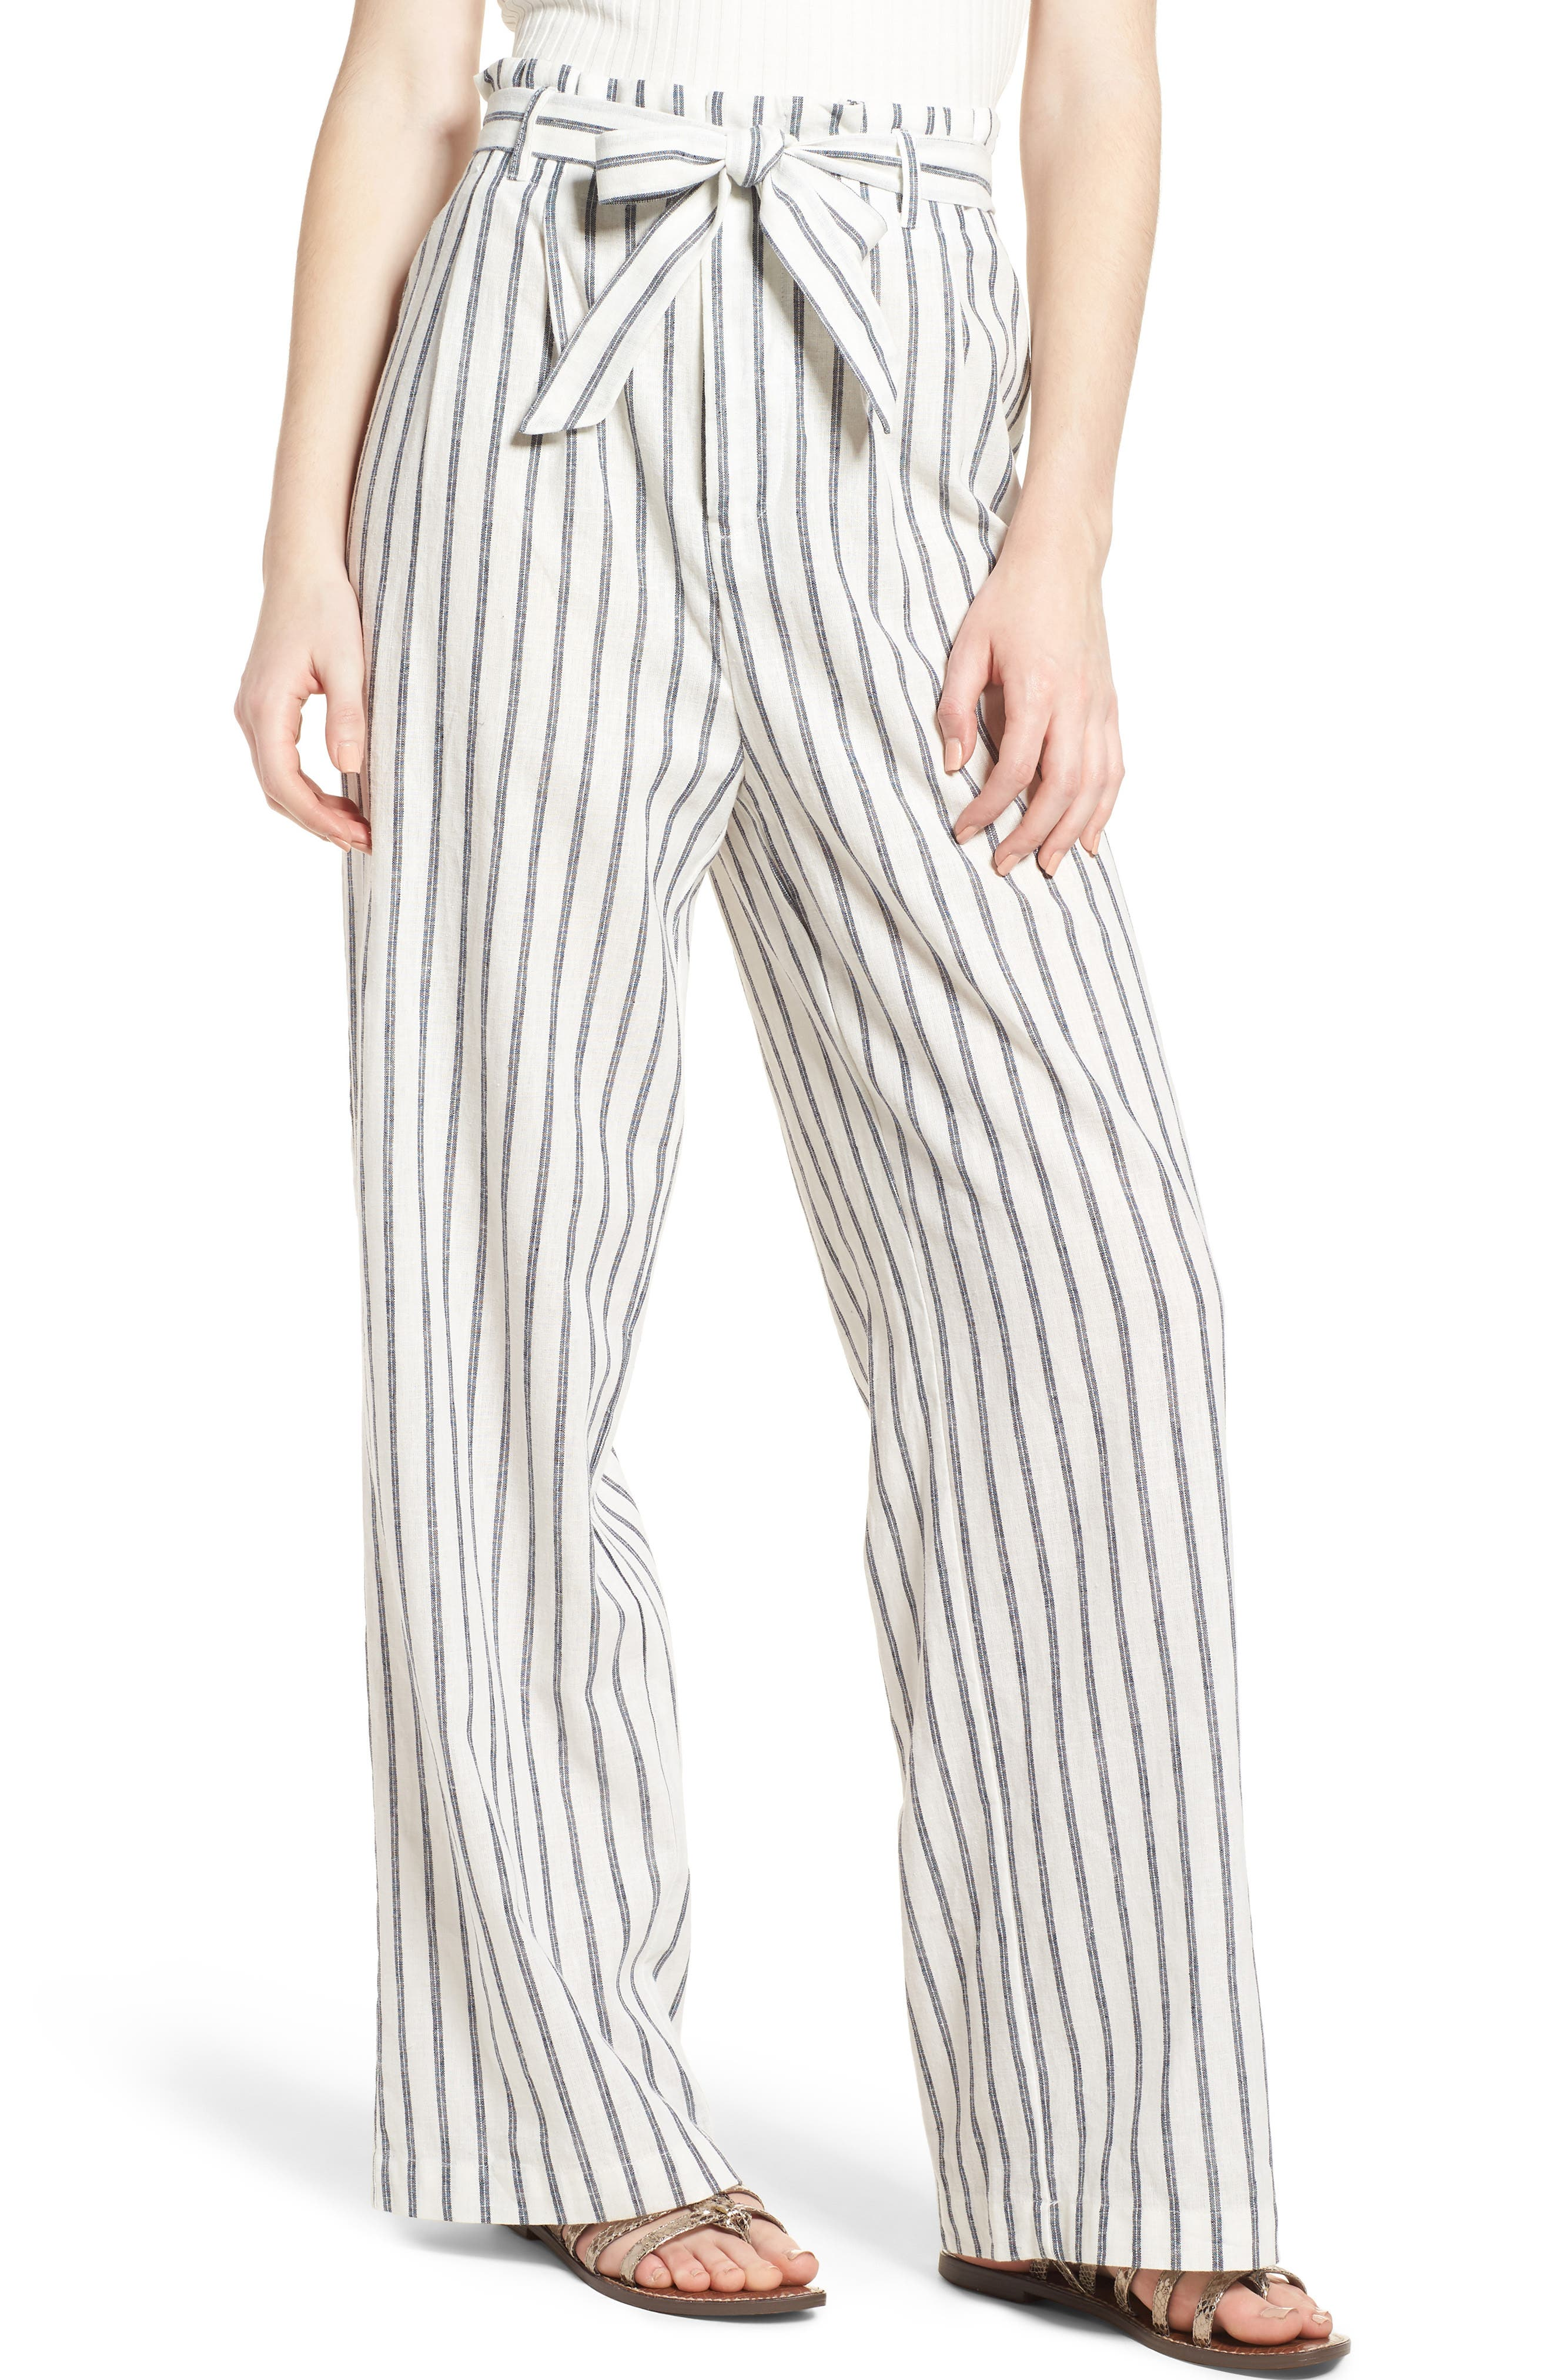 Paper Bag Linen & Cotton Pants,                             Main thumbnail 1, color,                             Ivory / Blue Stripe